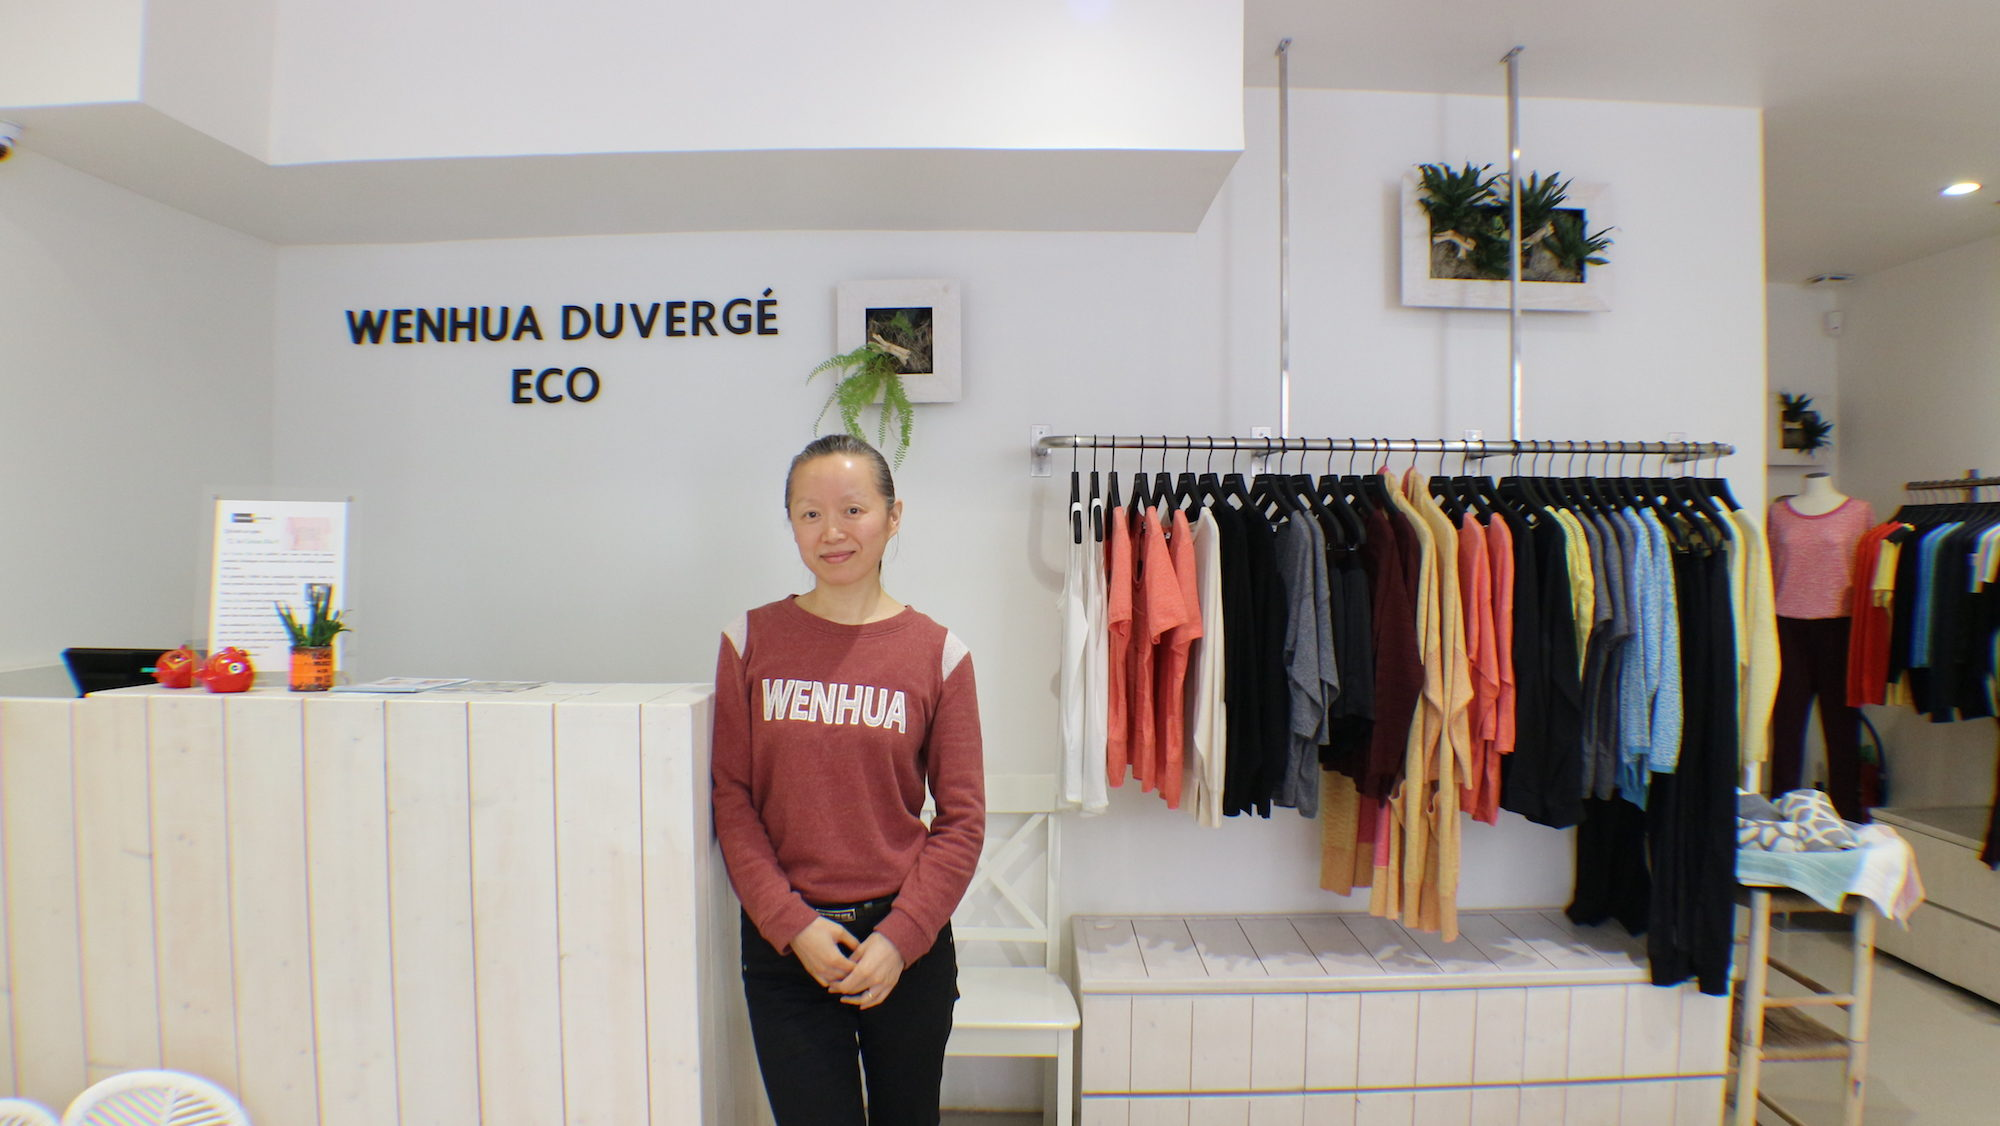 Wenhua Duvergé, a talented Paris-based Chinese designer who focuses on eco-conscious slow fashion at her Paris boutique in the Batignolles neighborhood.